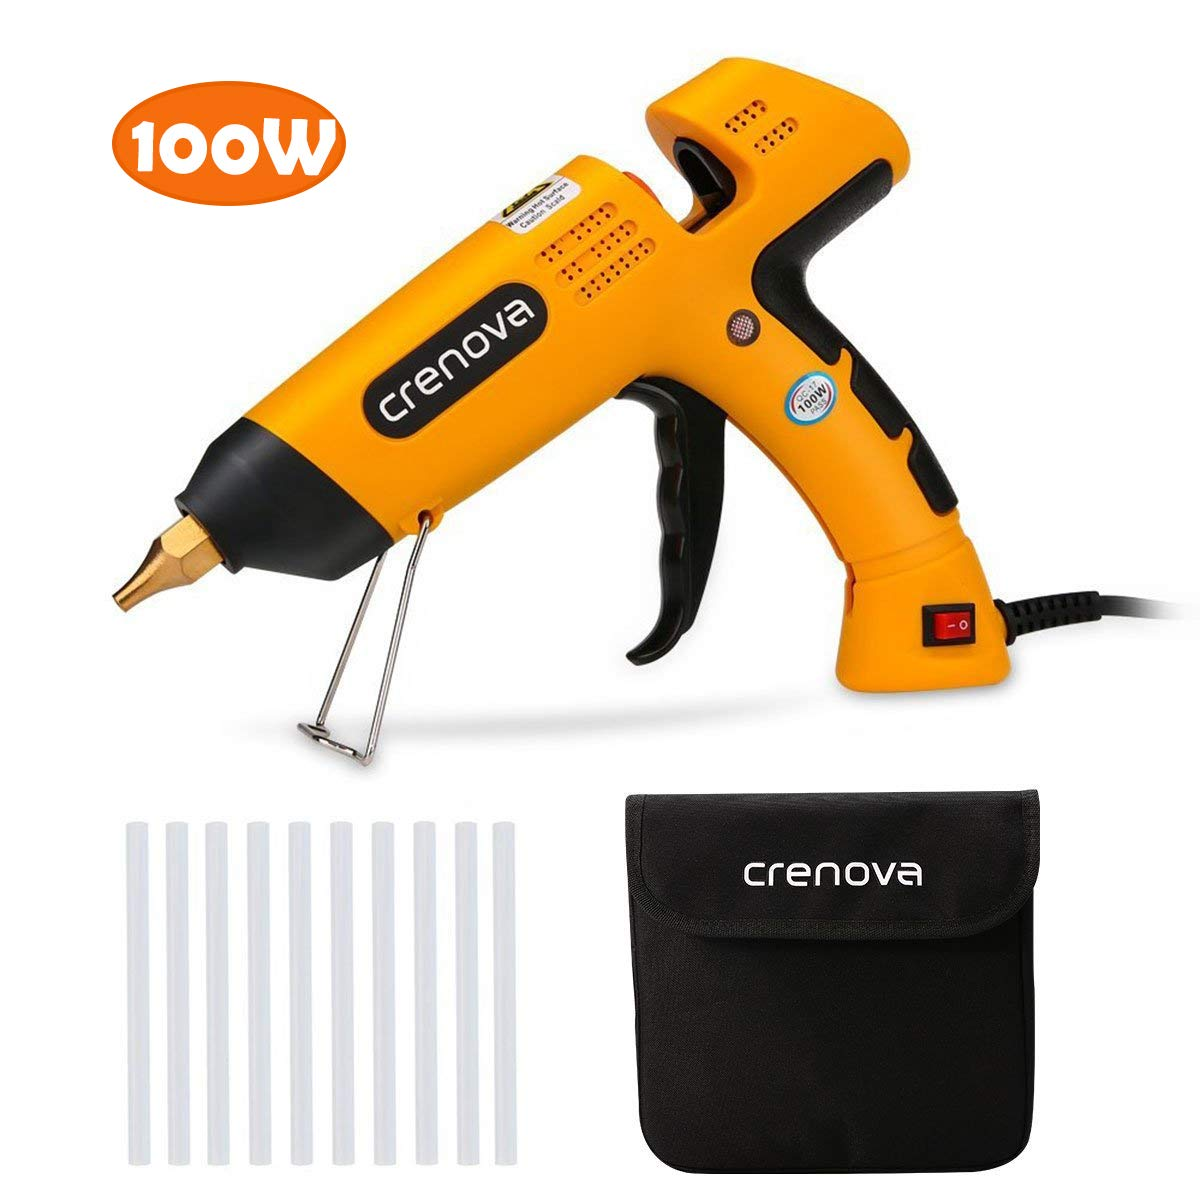 Glue Gun , Crenova 100 Watt Temperature Hot Melt Glue Gun with 10 PCS Transparent Glue Gun Sticks for DIY Arts & Crafts, & Sealing and Quick Repairs,Yellow